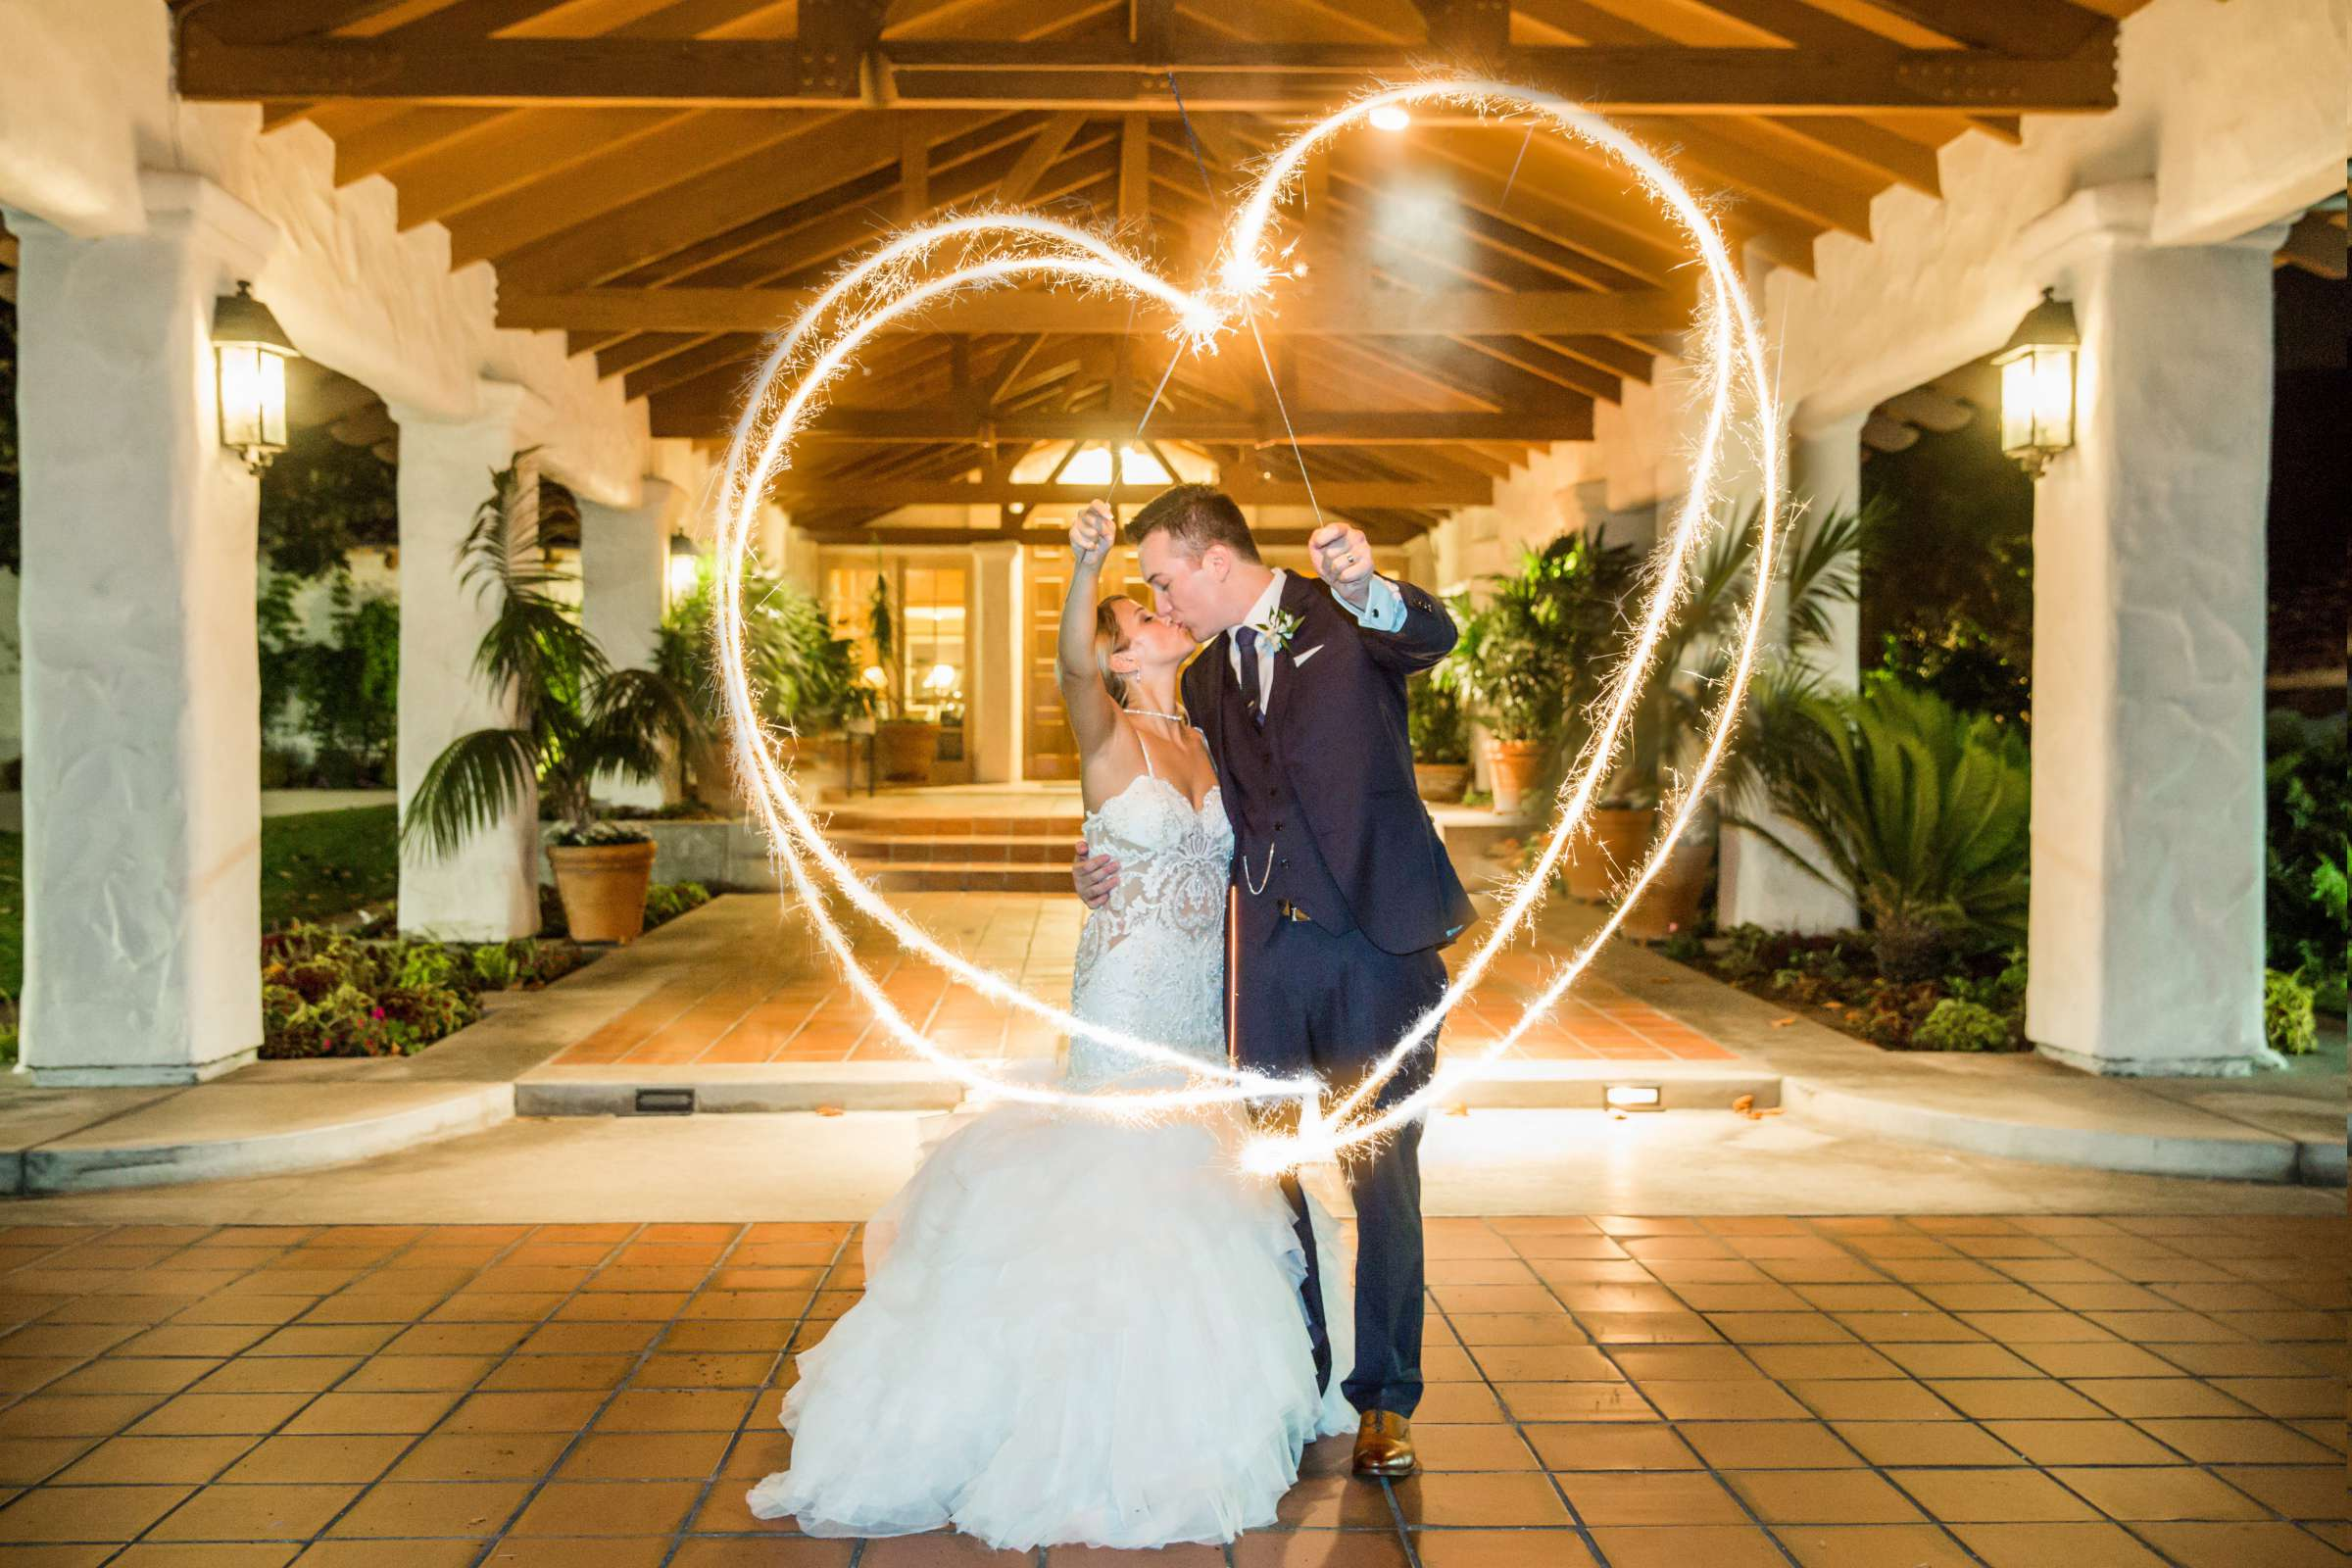 Fairbanks Ranch Country Club Wedding coordinated by Monarch Weddings, Gabriella and Kyle Wedding Photo #26 by True Photography